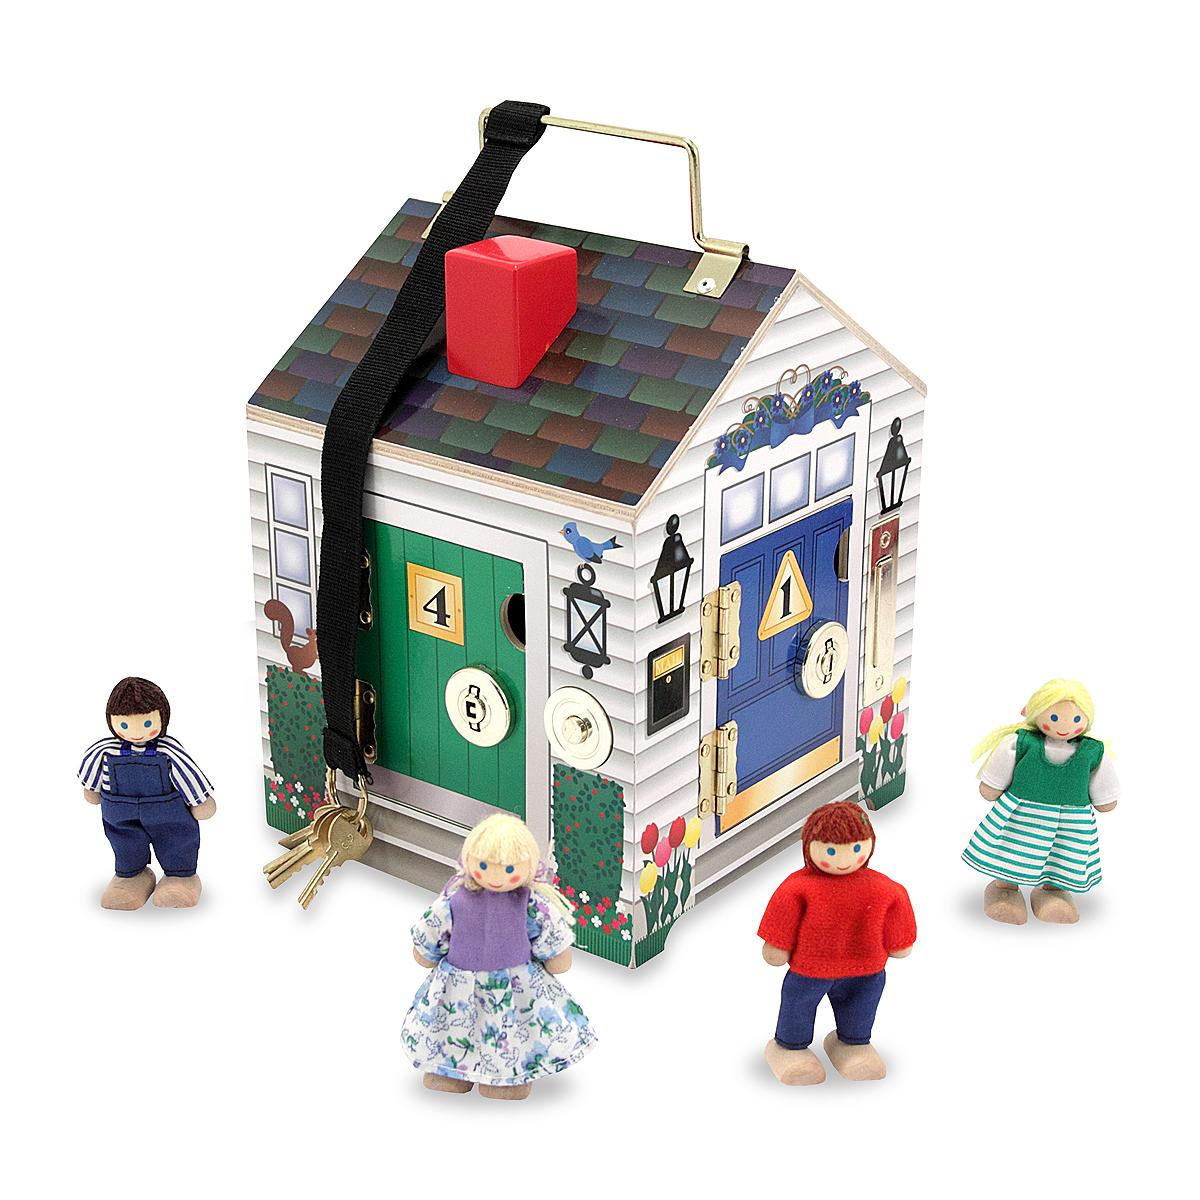 Dollhouse, travel, take along toy, play house